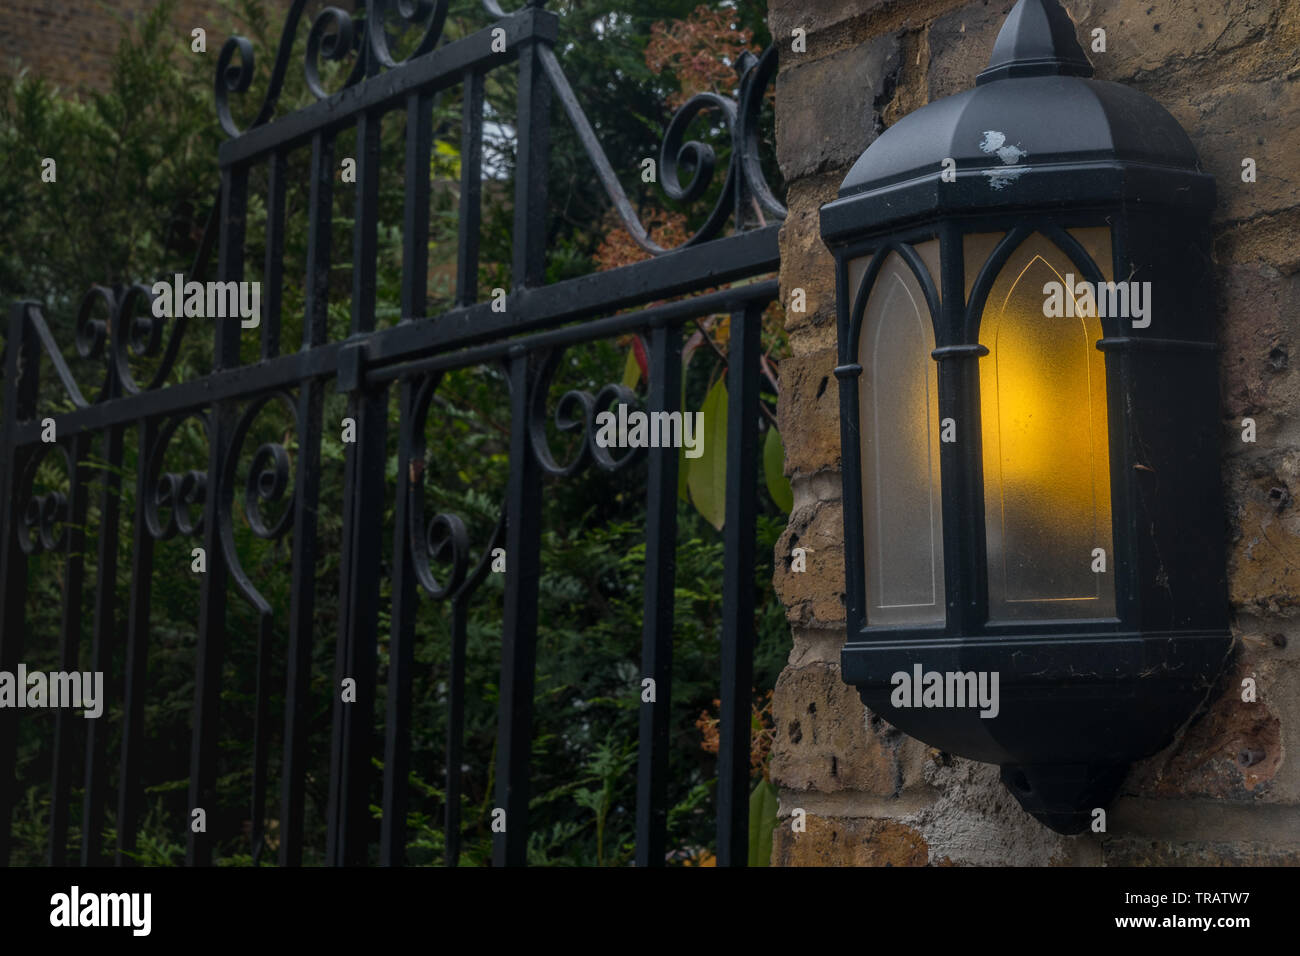 Lamps illuminate the evening attached to the house Suitable for background images. - Stock Image